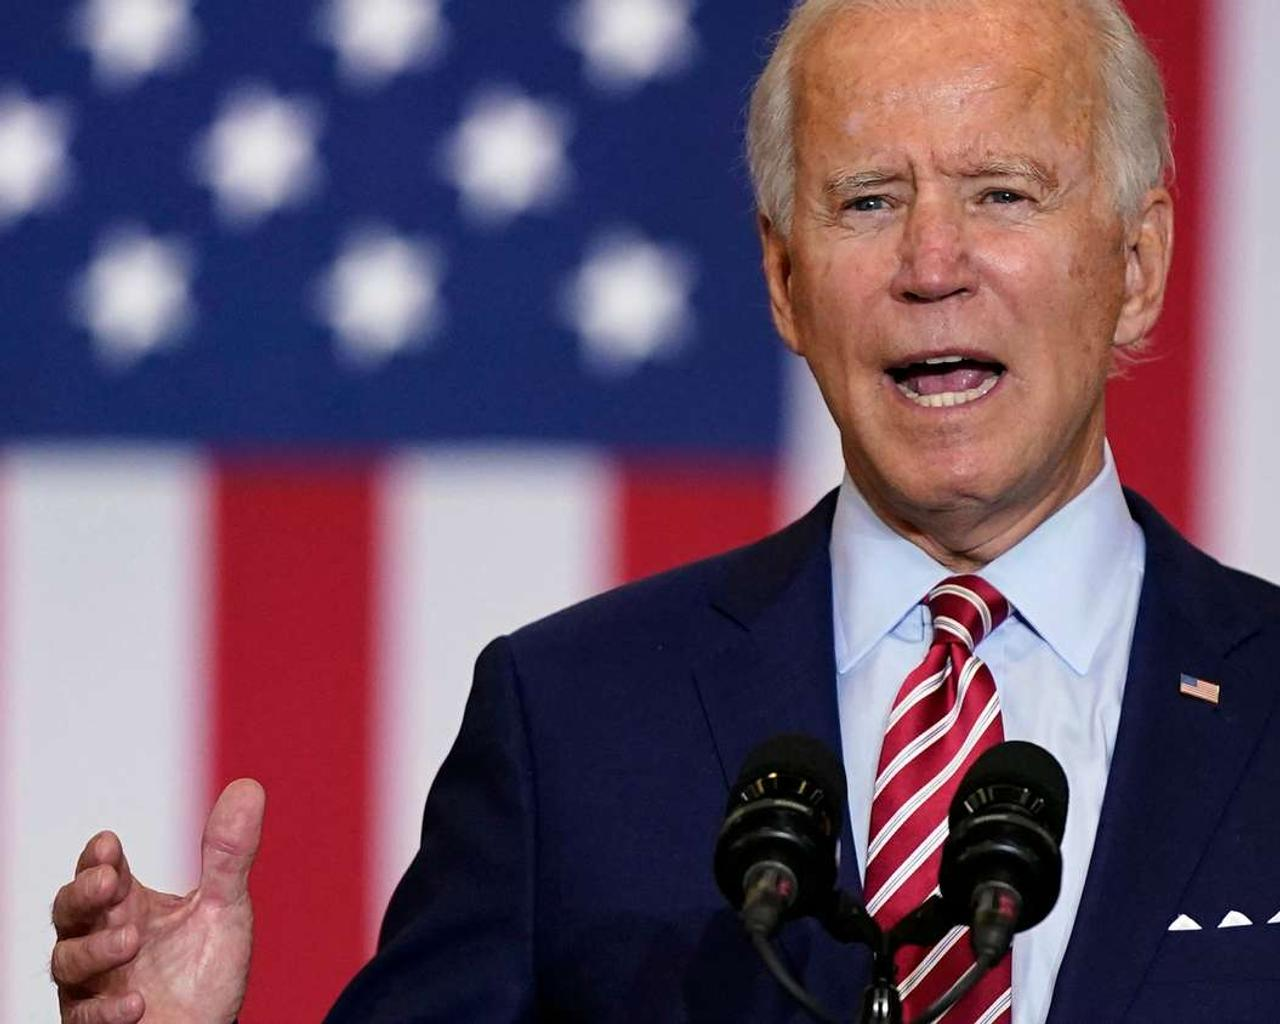 Biden unveils a $2 trillion investment initiative and introduces tax increases to fund it.